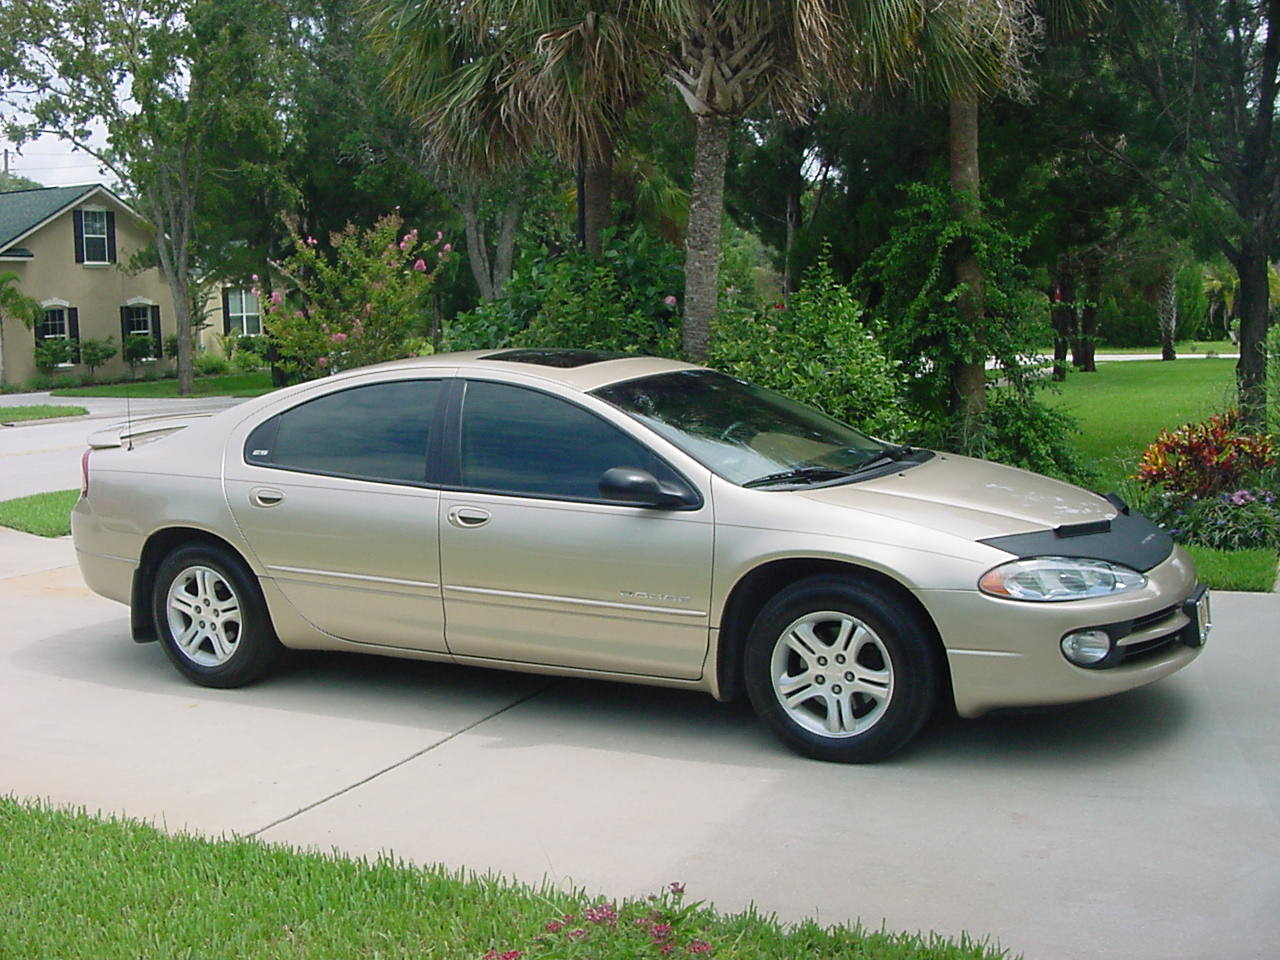 2000 Dodge Intrepid #3